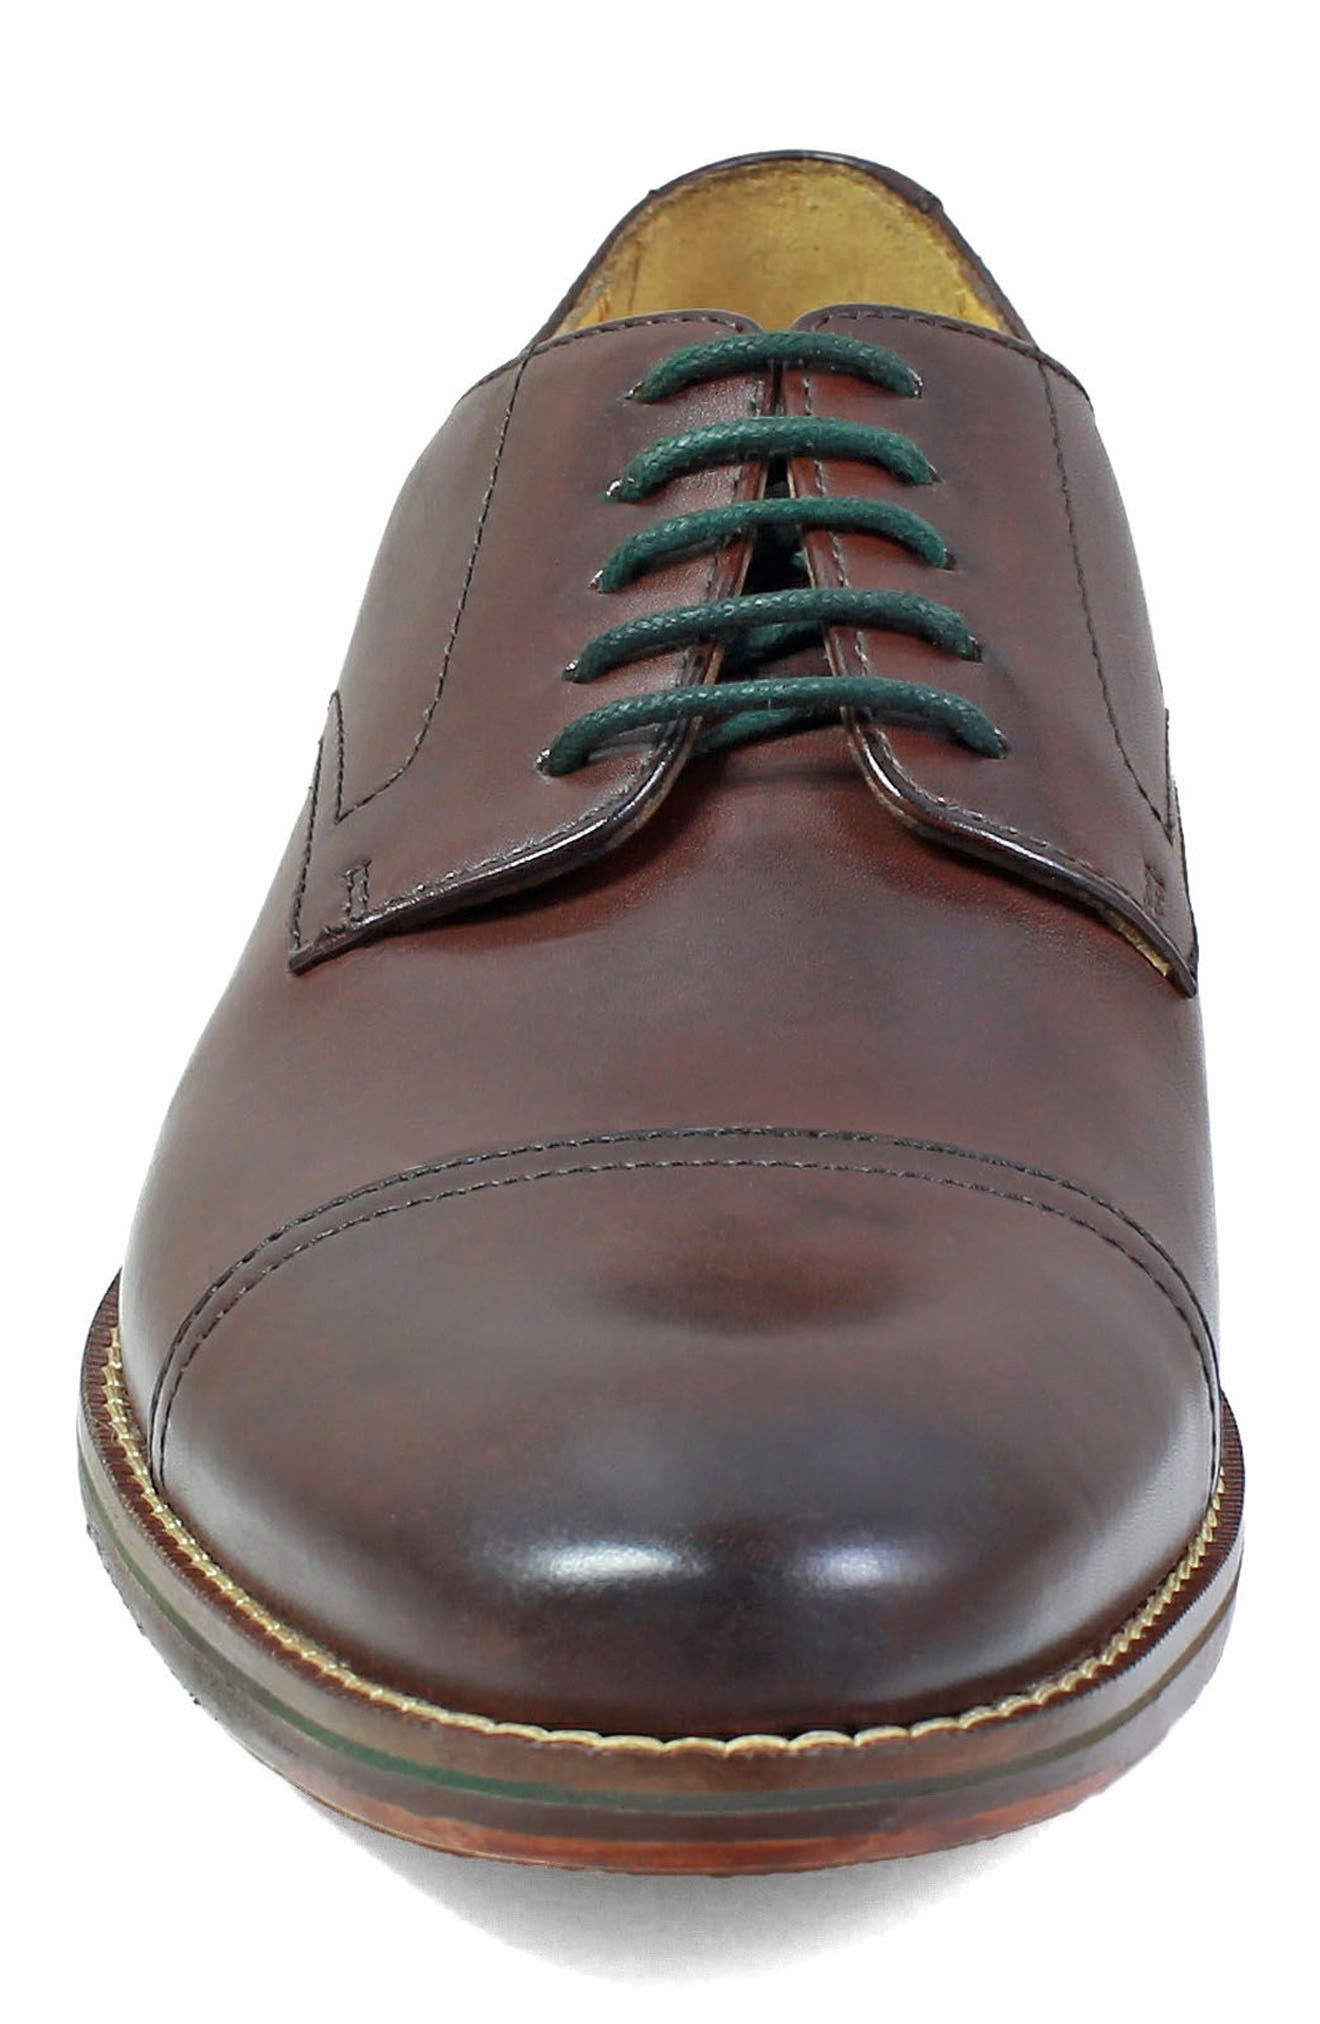 Salerno Cap Toe Derby,                             Alternate thumbnail 4, color,                             Brown Leather